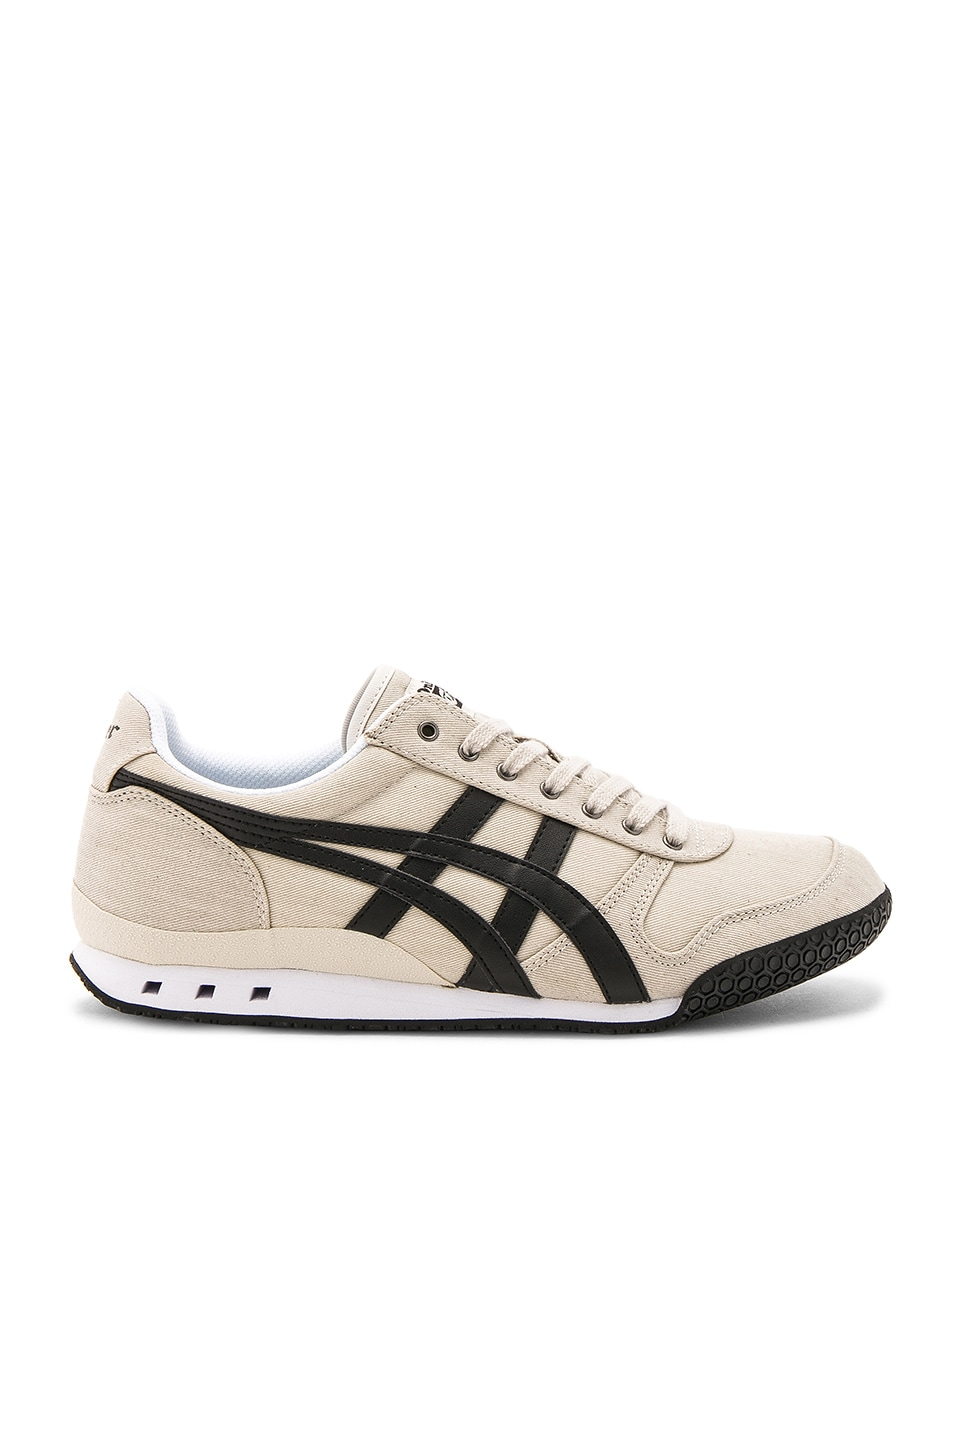 Ultimate 81 by Onitsuka Tiger